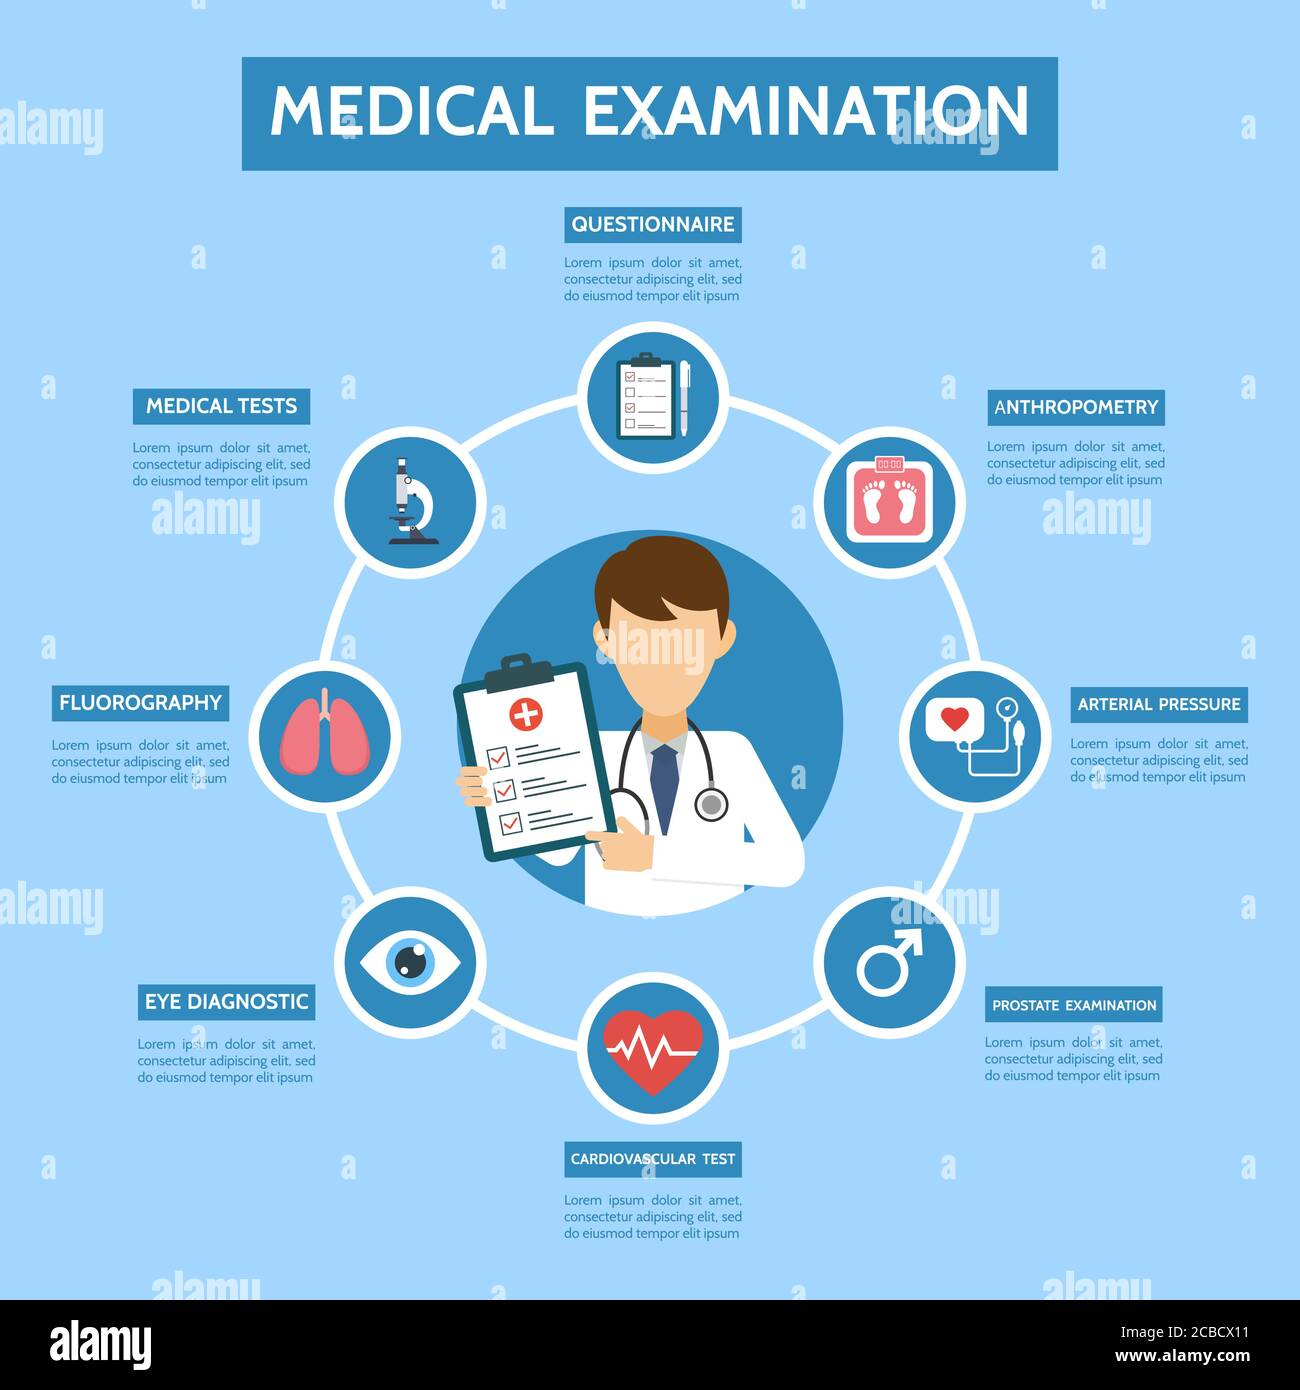 Medical Examination Infographic Concept Medicine Healthcare Banner With Doctor And Medical Tests Online Doctor Diagnosis Health Care Online Consul Stock Vector Image Art Alamy